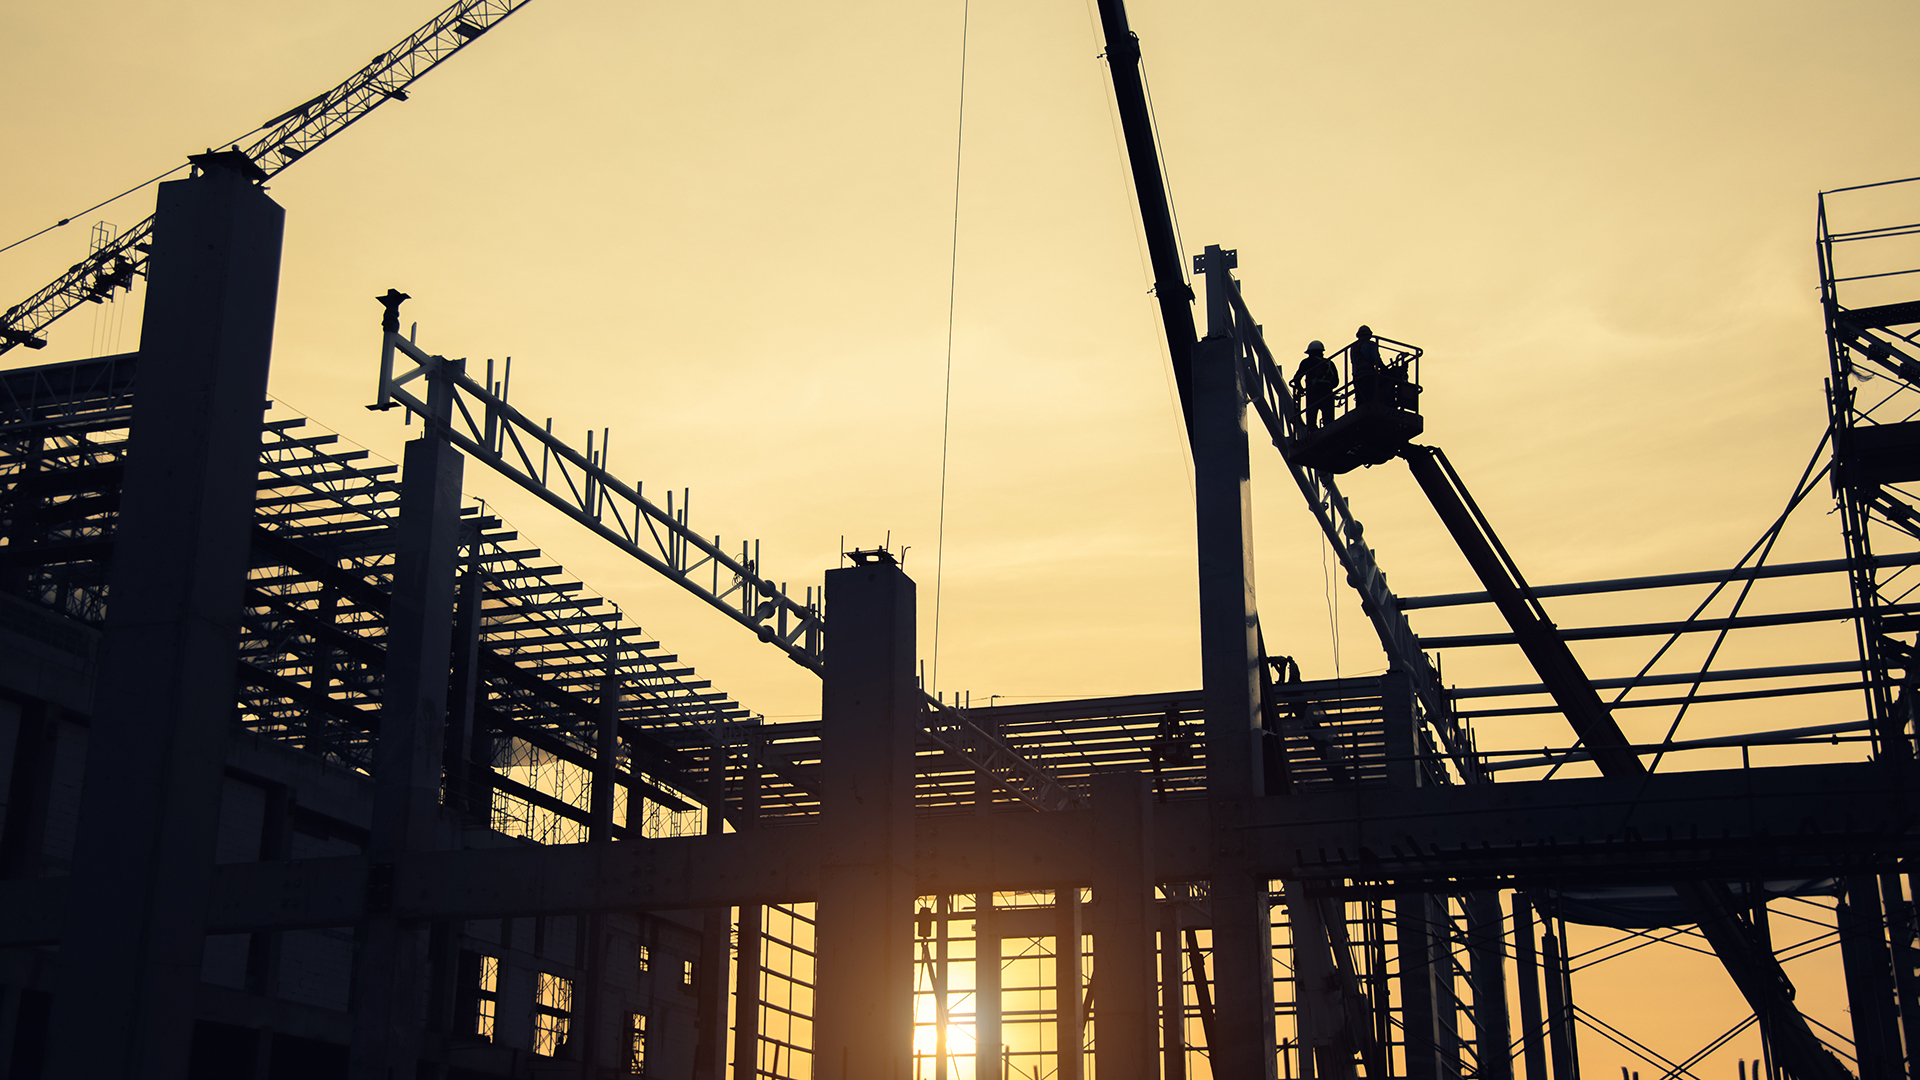 Construction and sunset